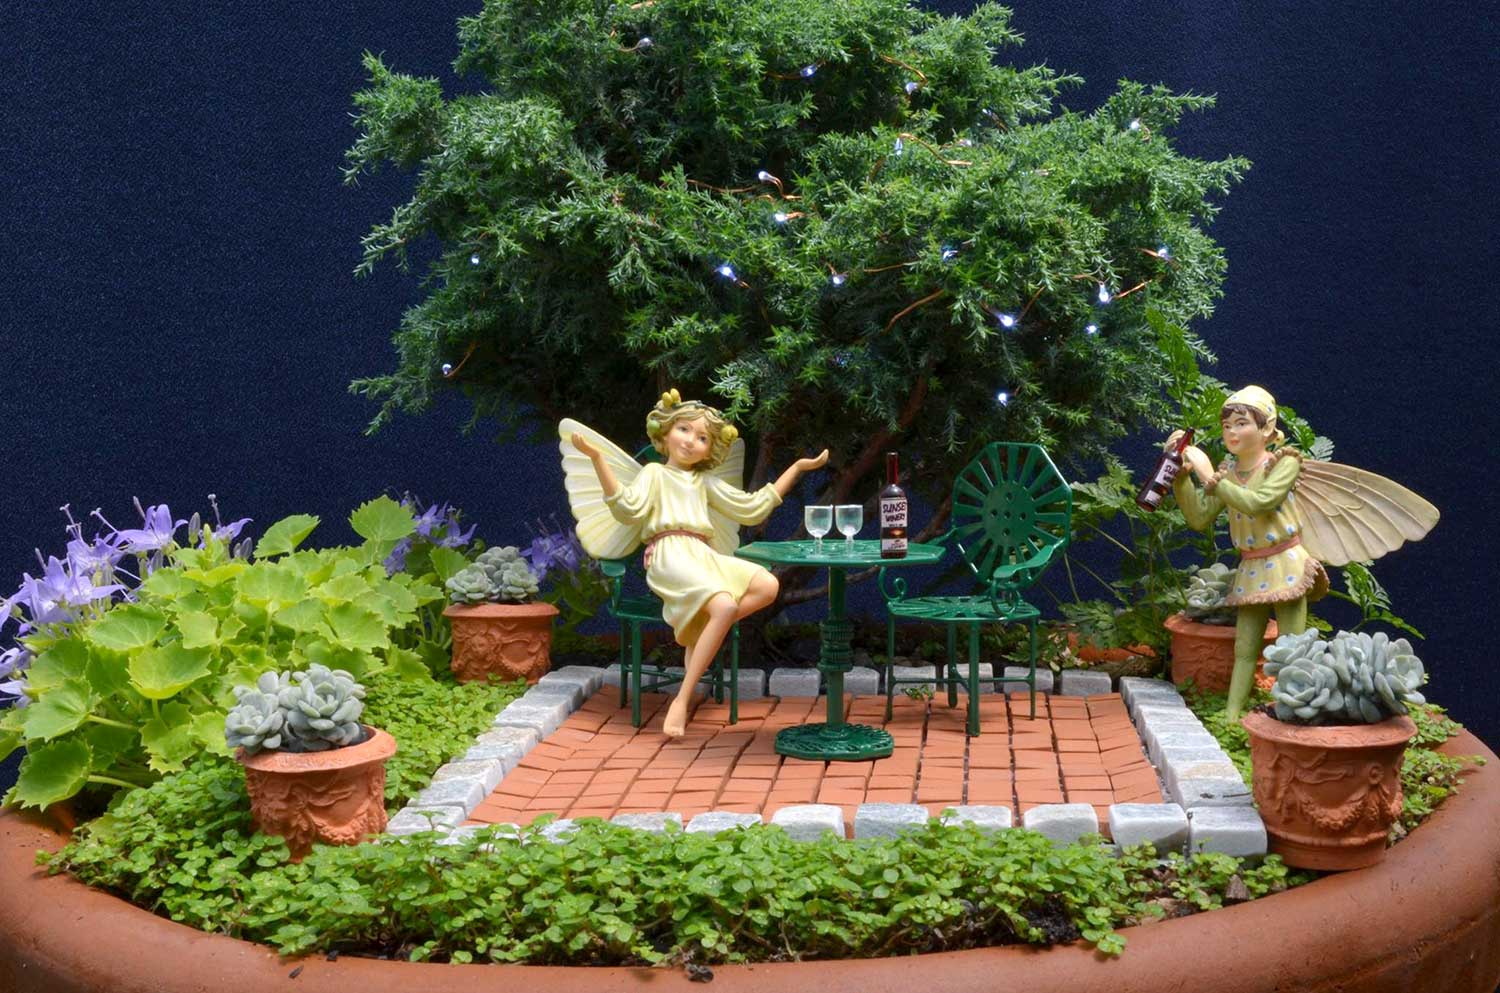 Fairygardenatnight